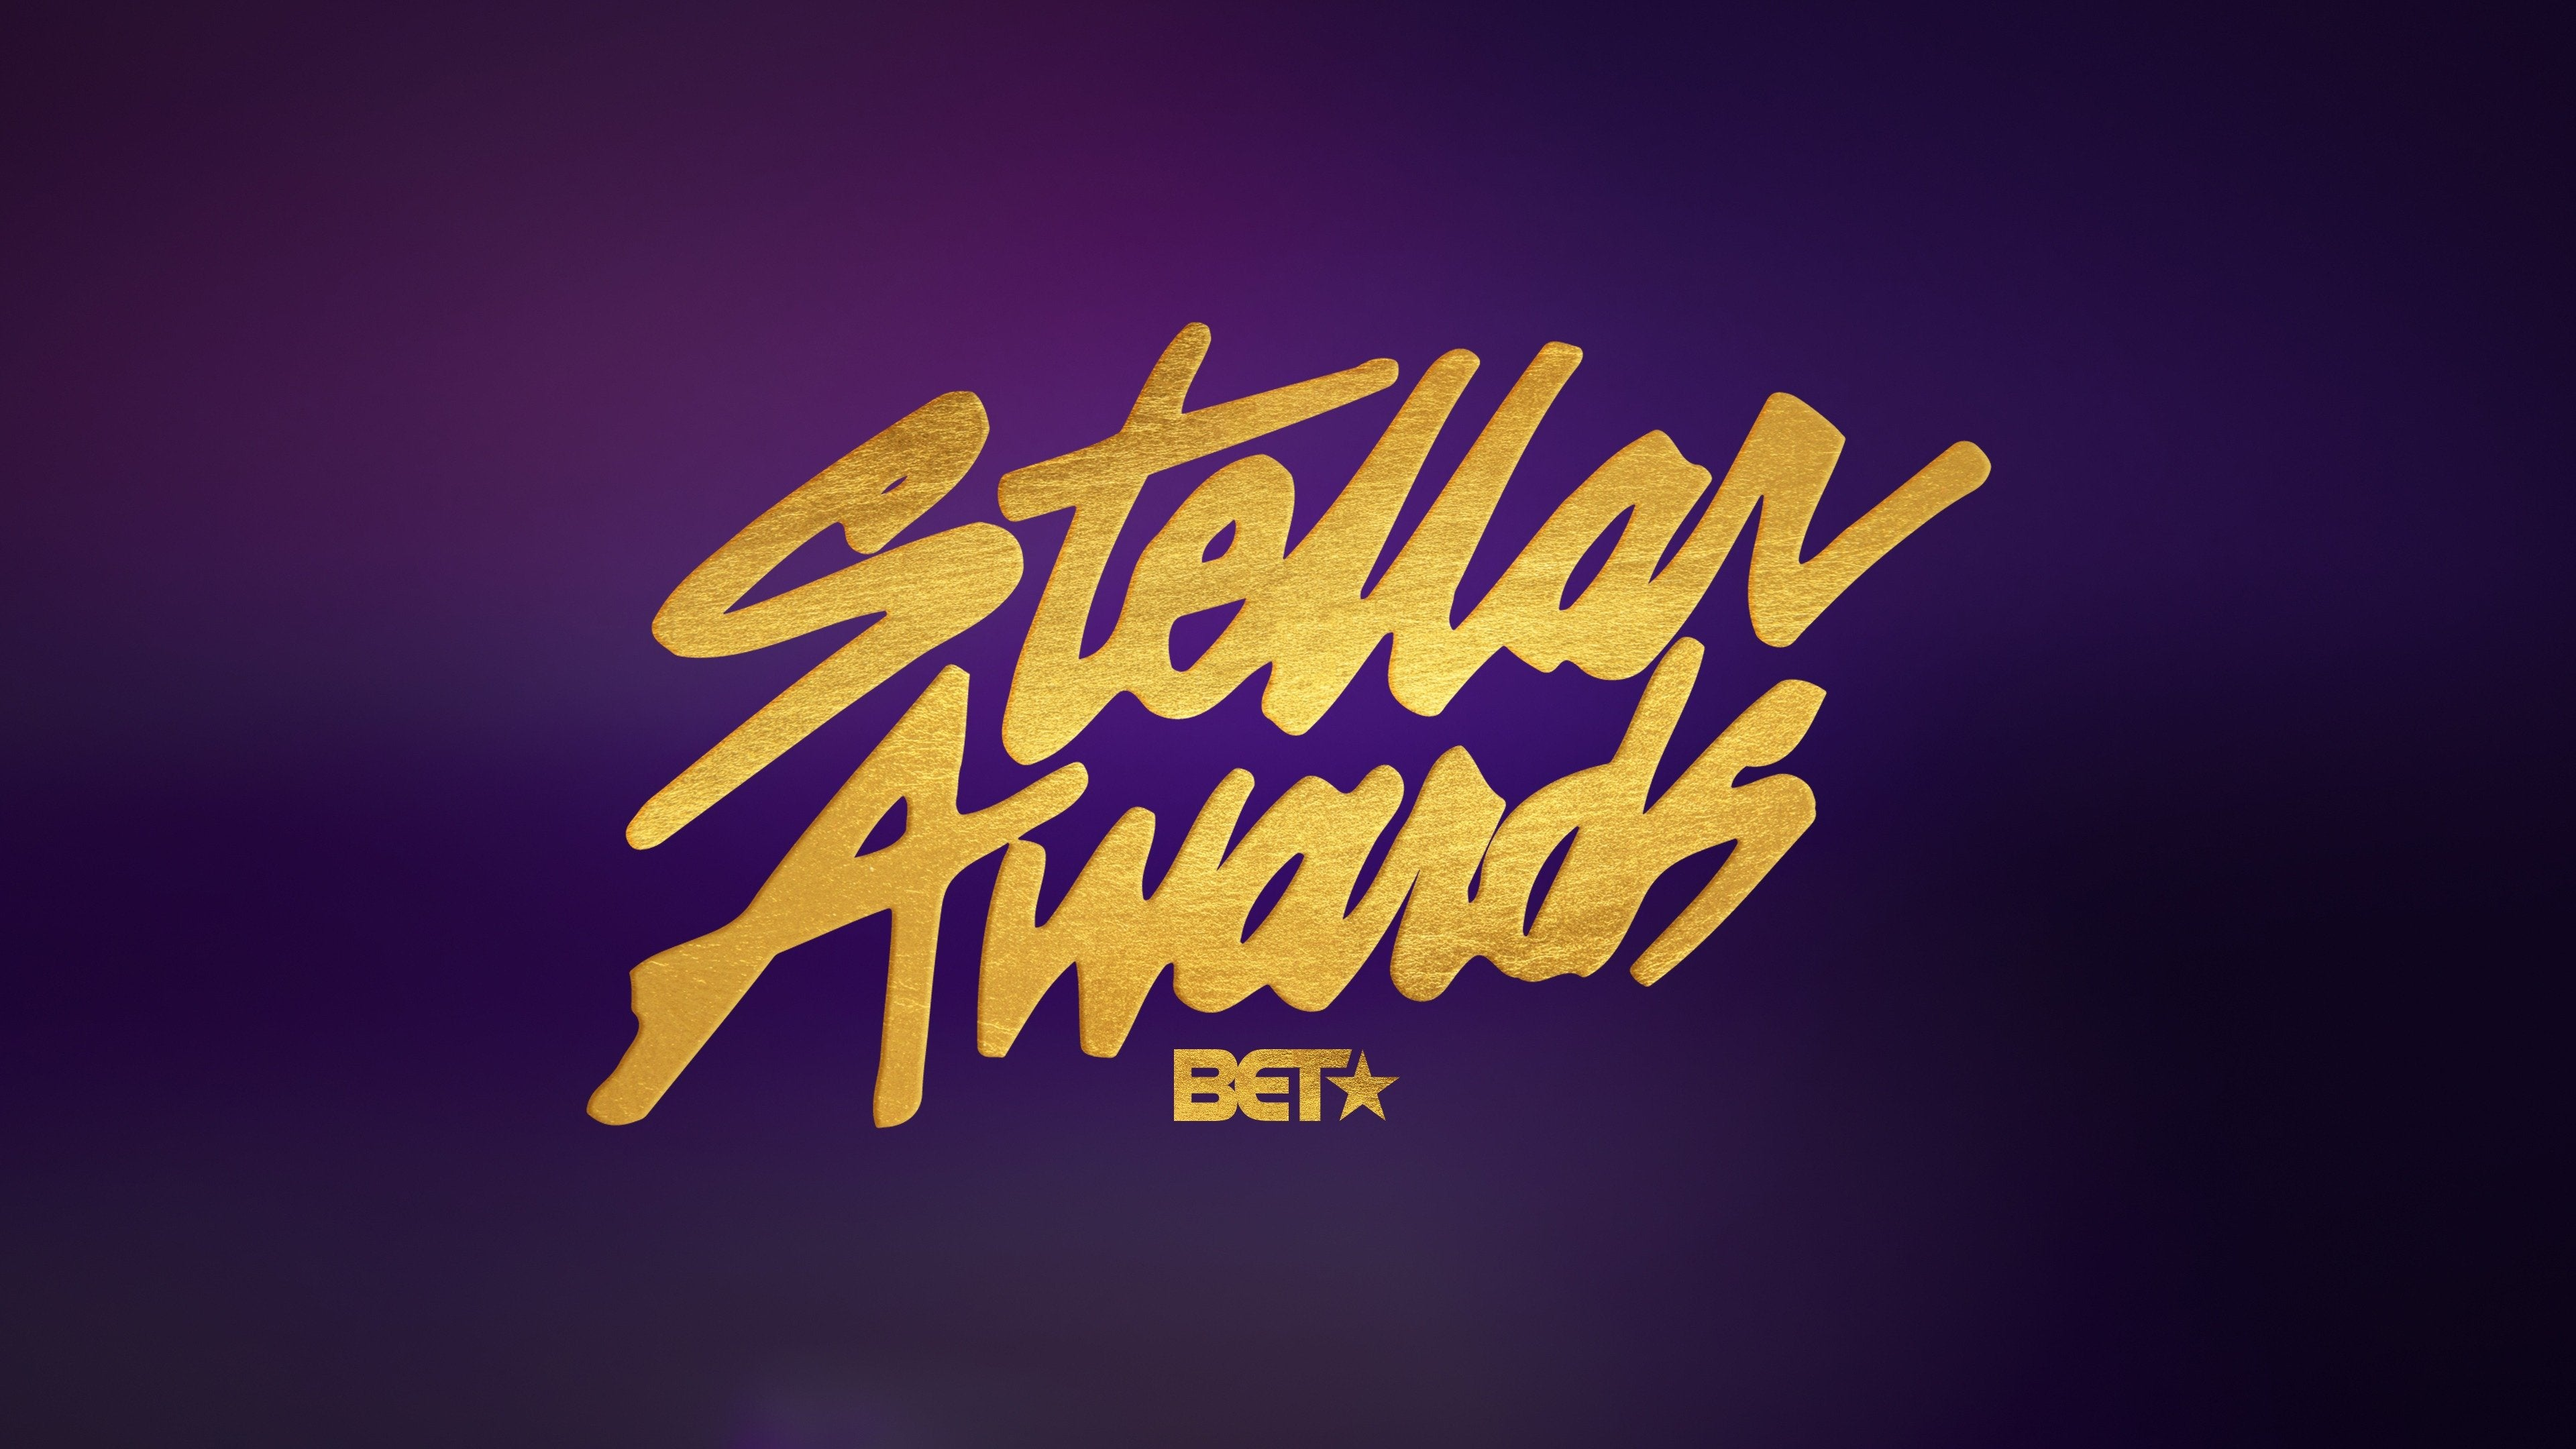 34th Annual Stellar Gospel Music Awards